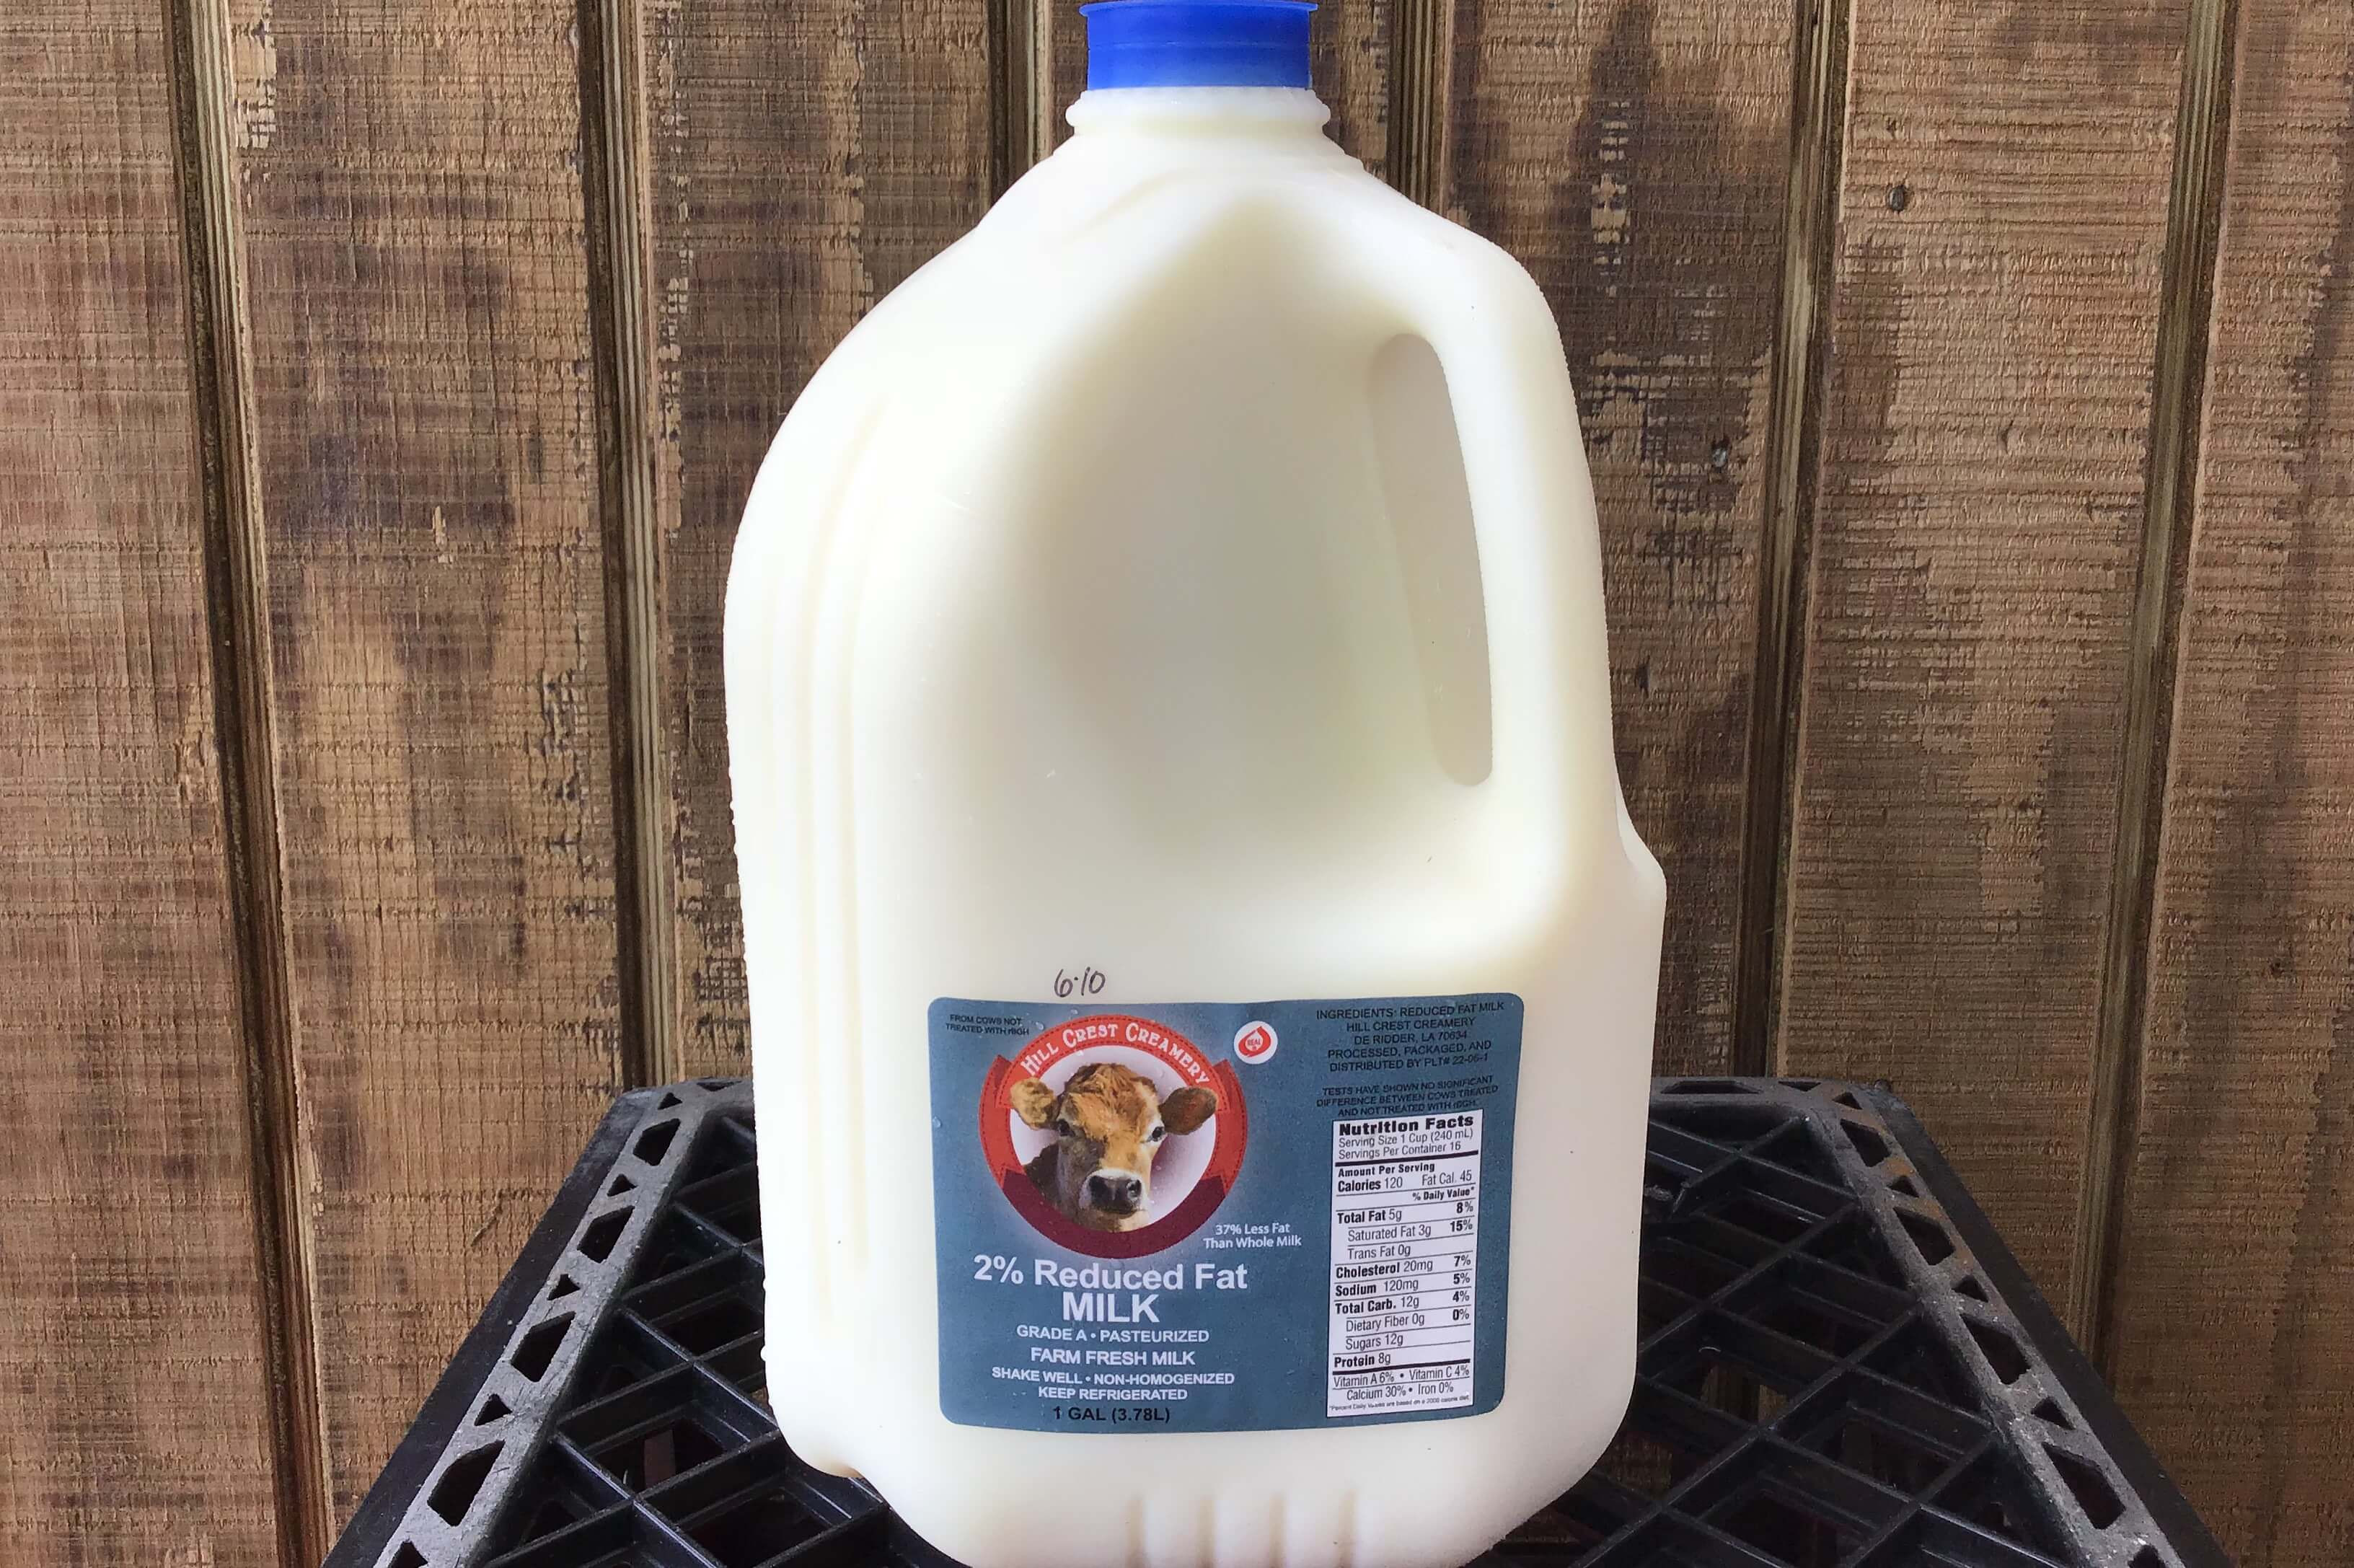 2% Reduced Fat Milk Gallon